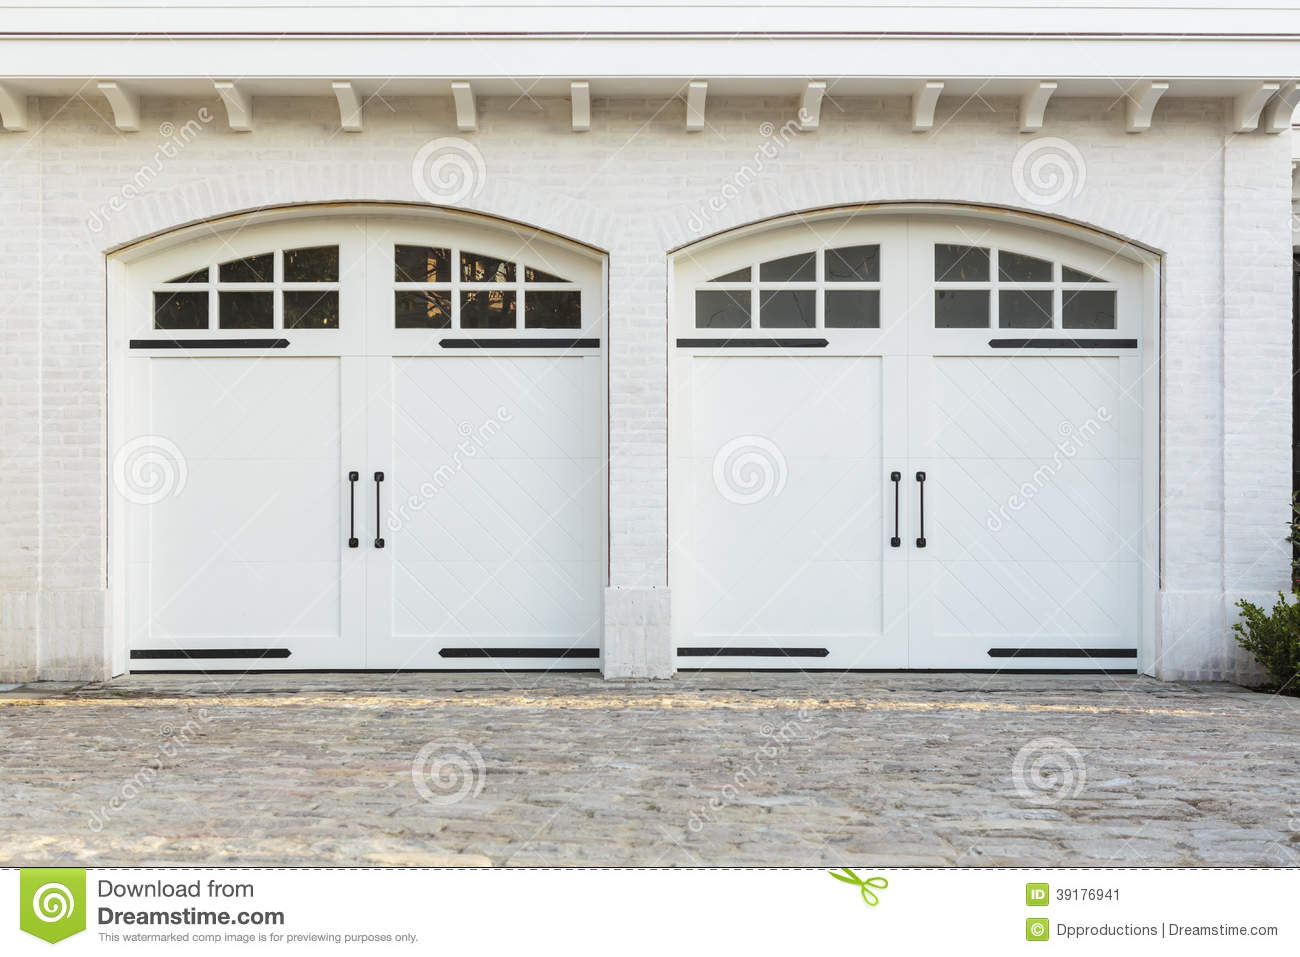 garage door hardware ideas - Twin Double Garage Doors To A White Home Stock